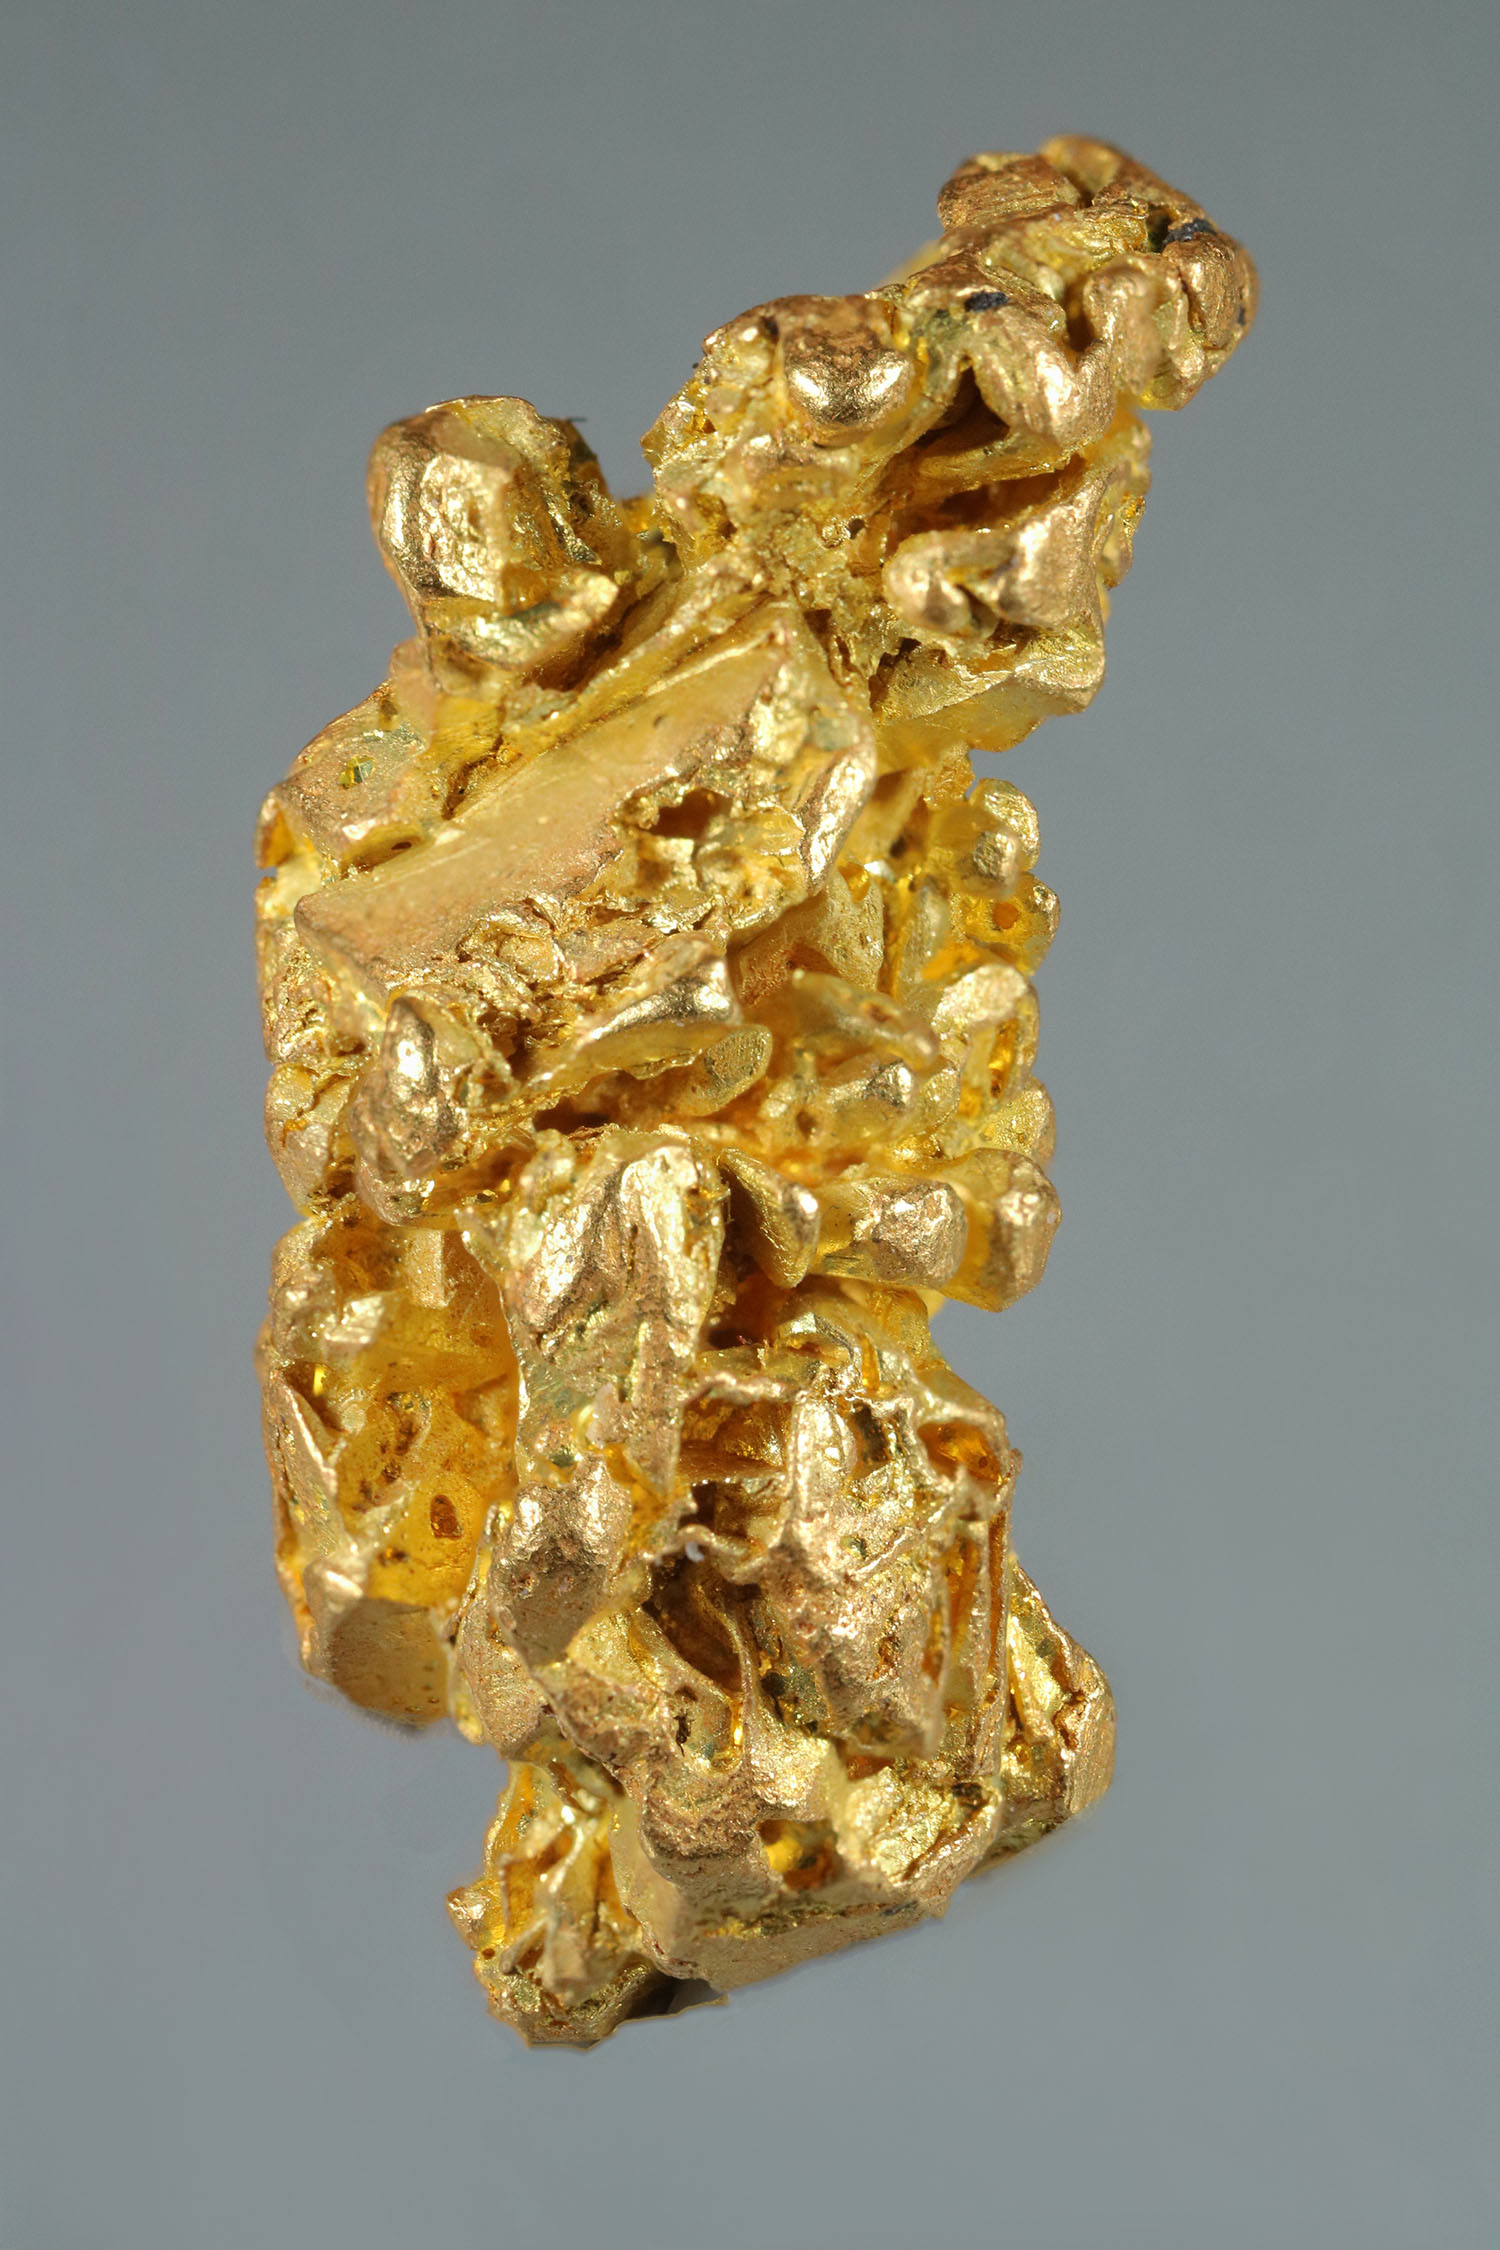 Elongated and Faceted - Yukon Gold Crystal